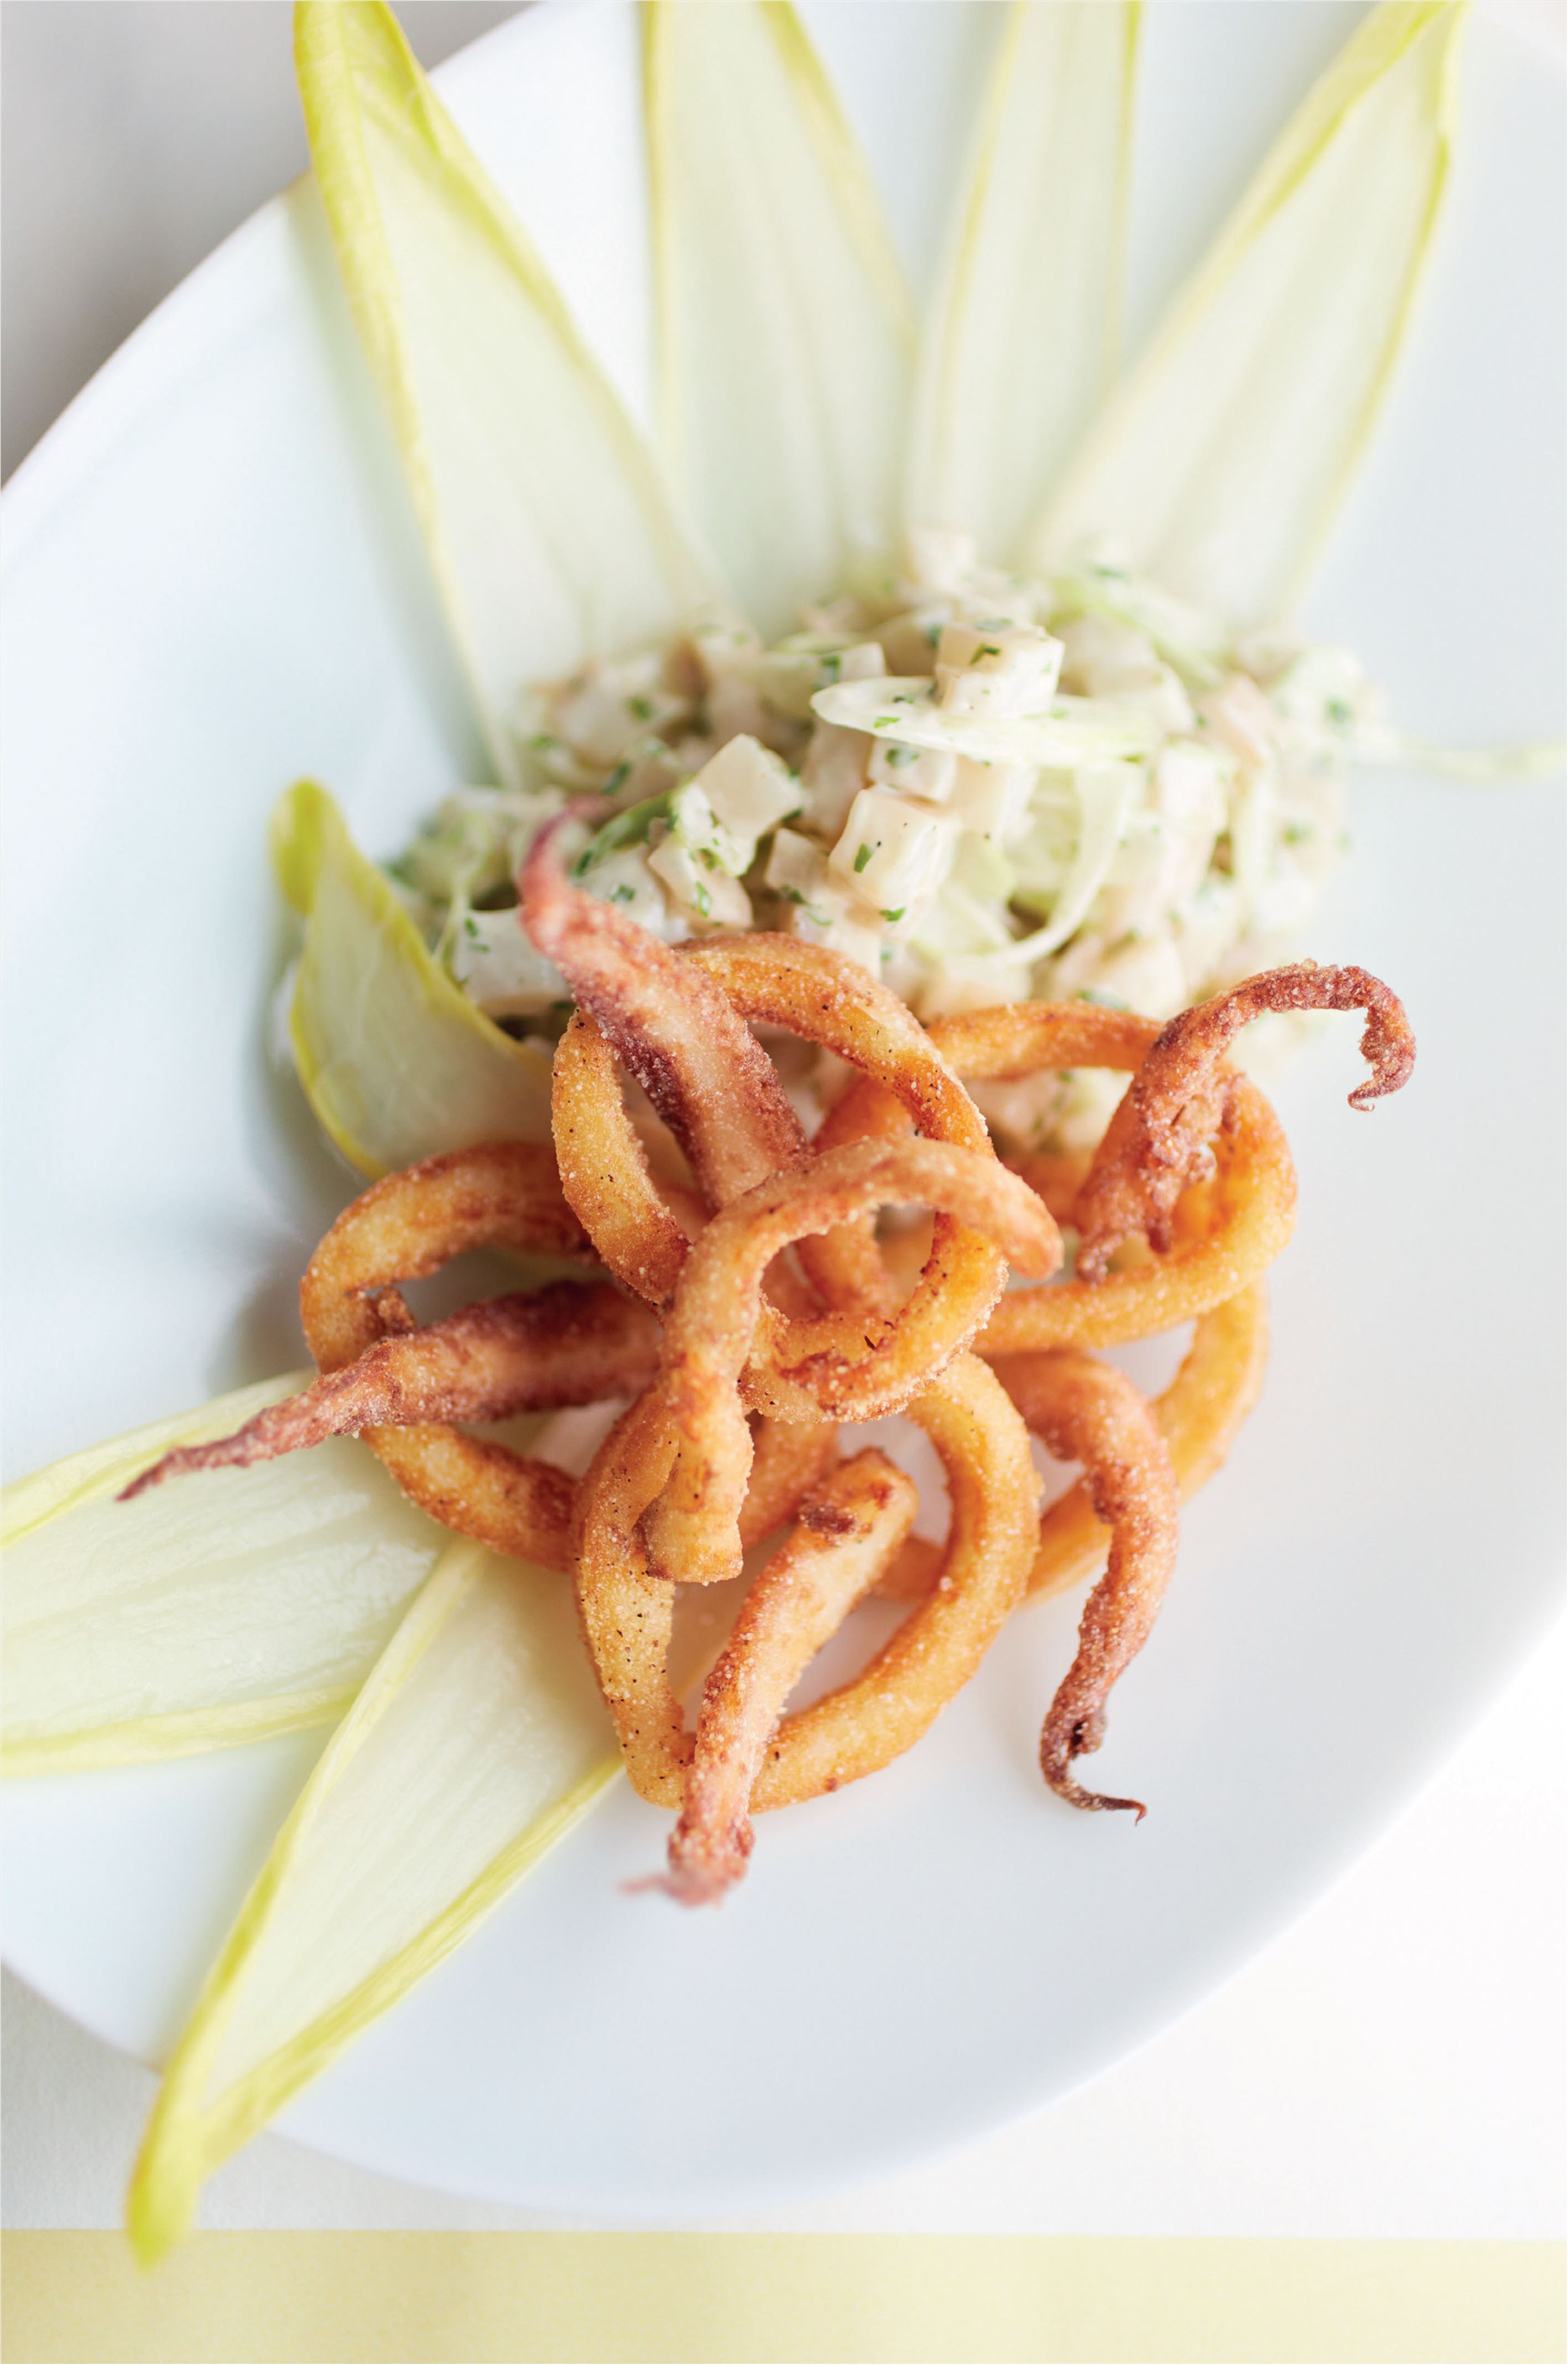 Braised squid 'Redas style' with pickled chicory salad